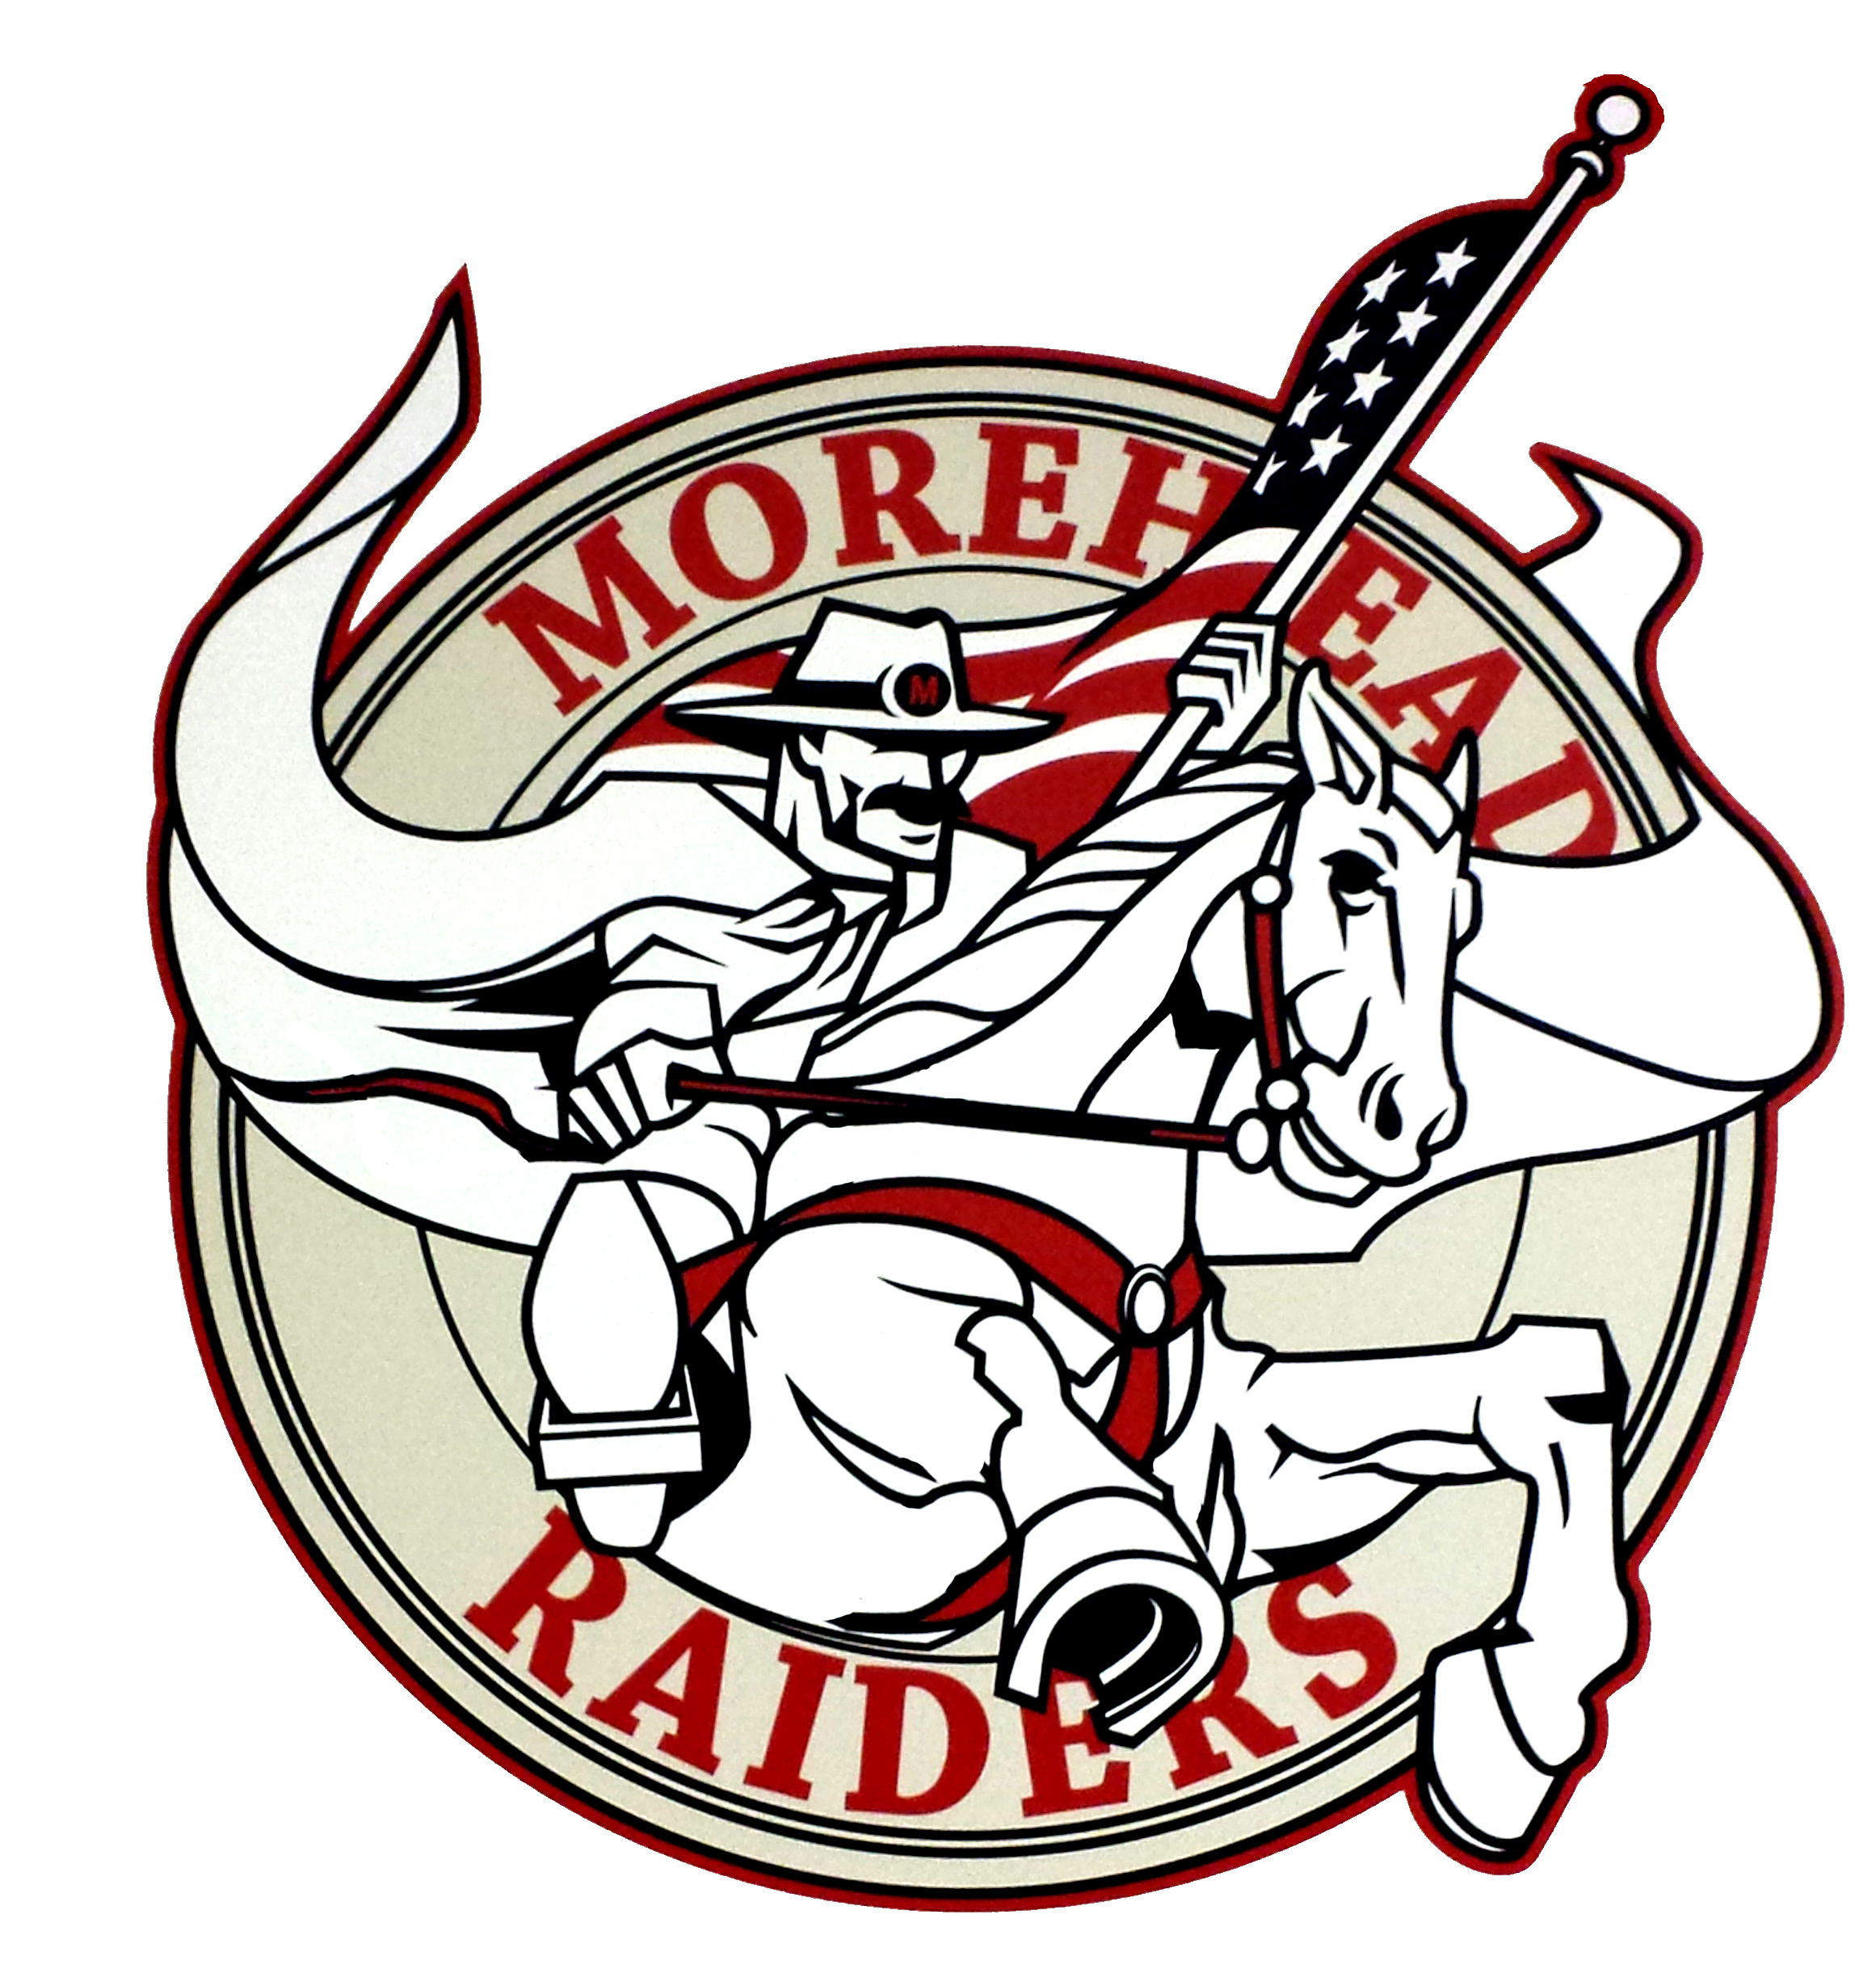 Morehead Middle